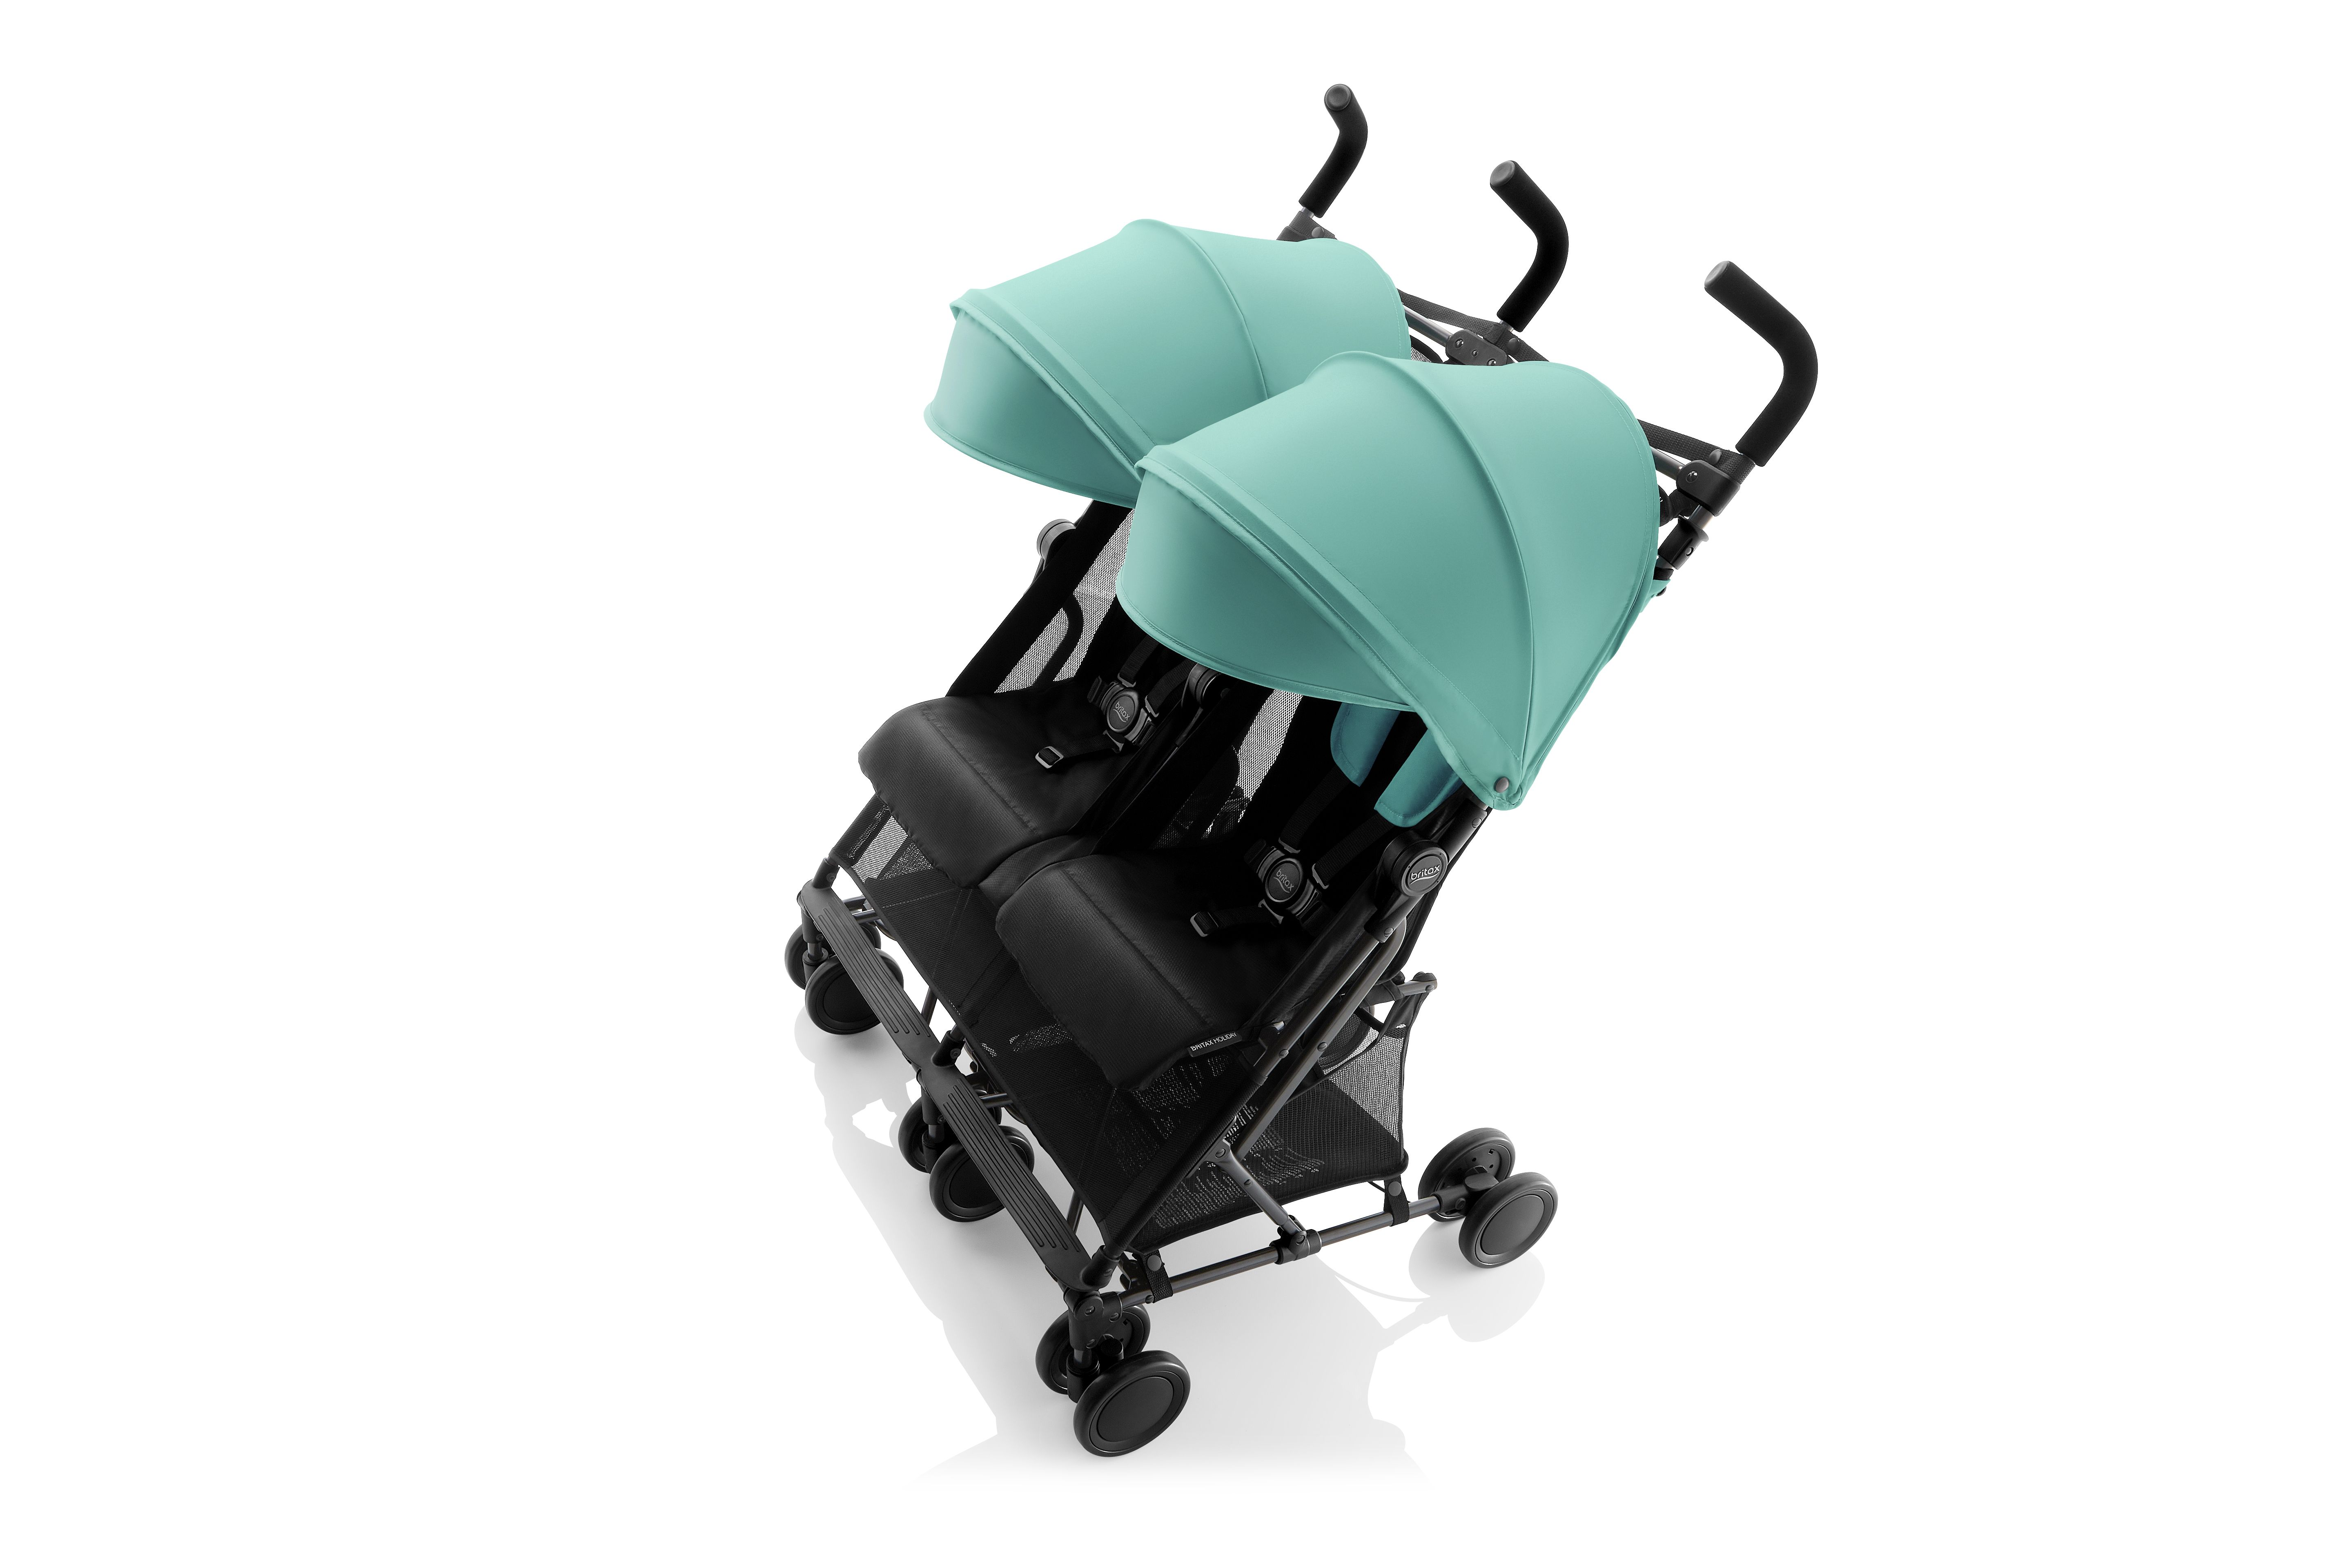 HOLIDAY DOUBLE Britax double stroller, Double strollers